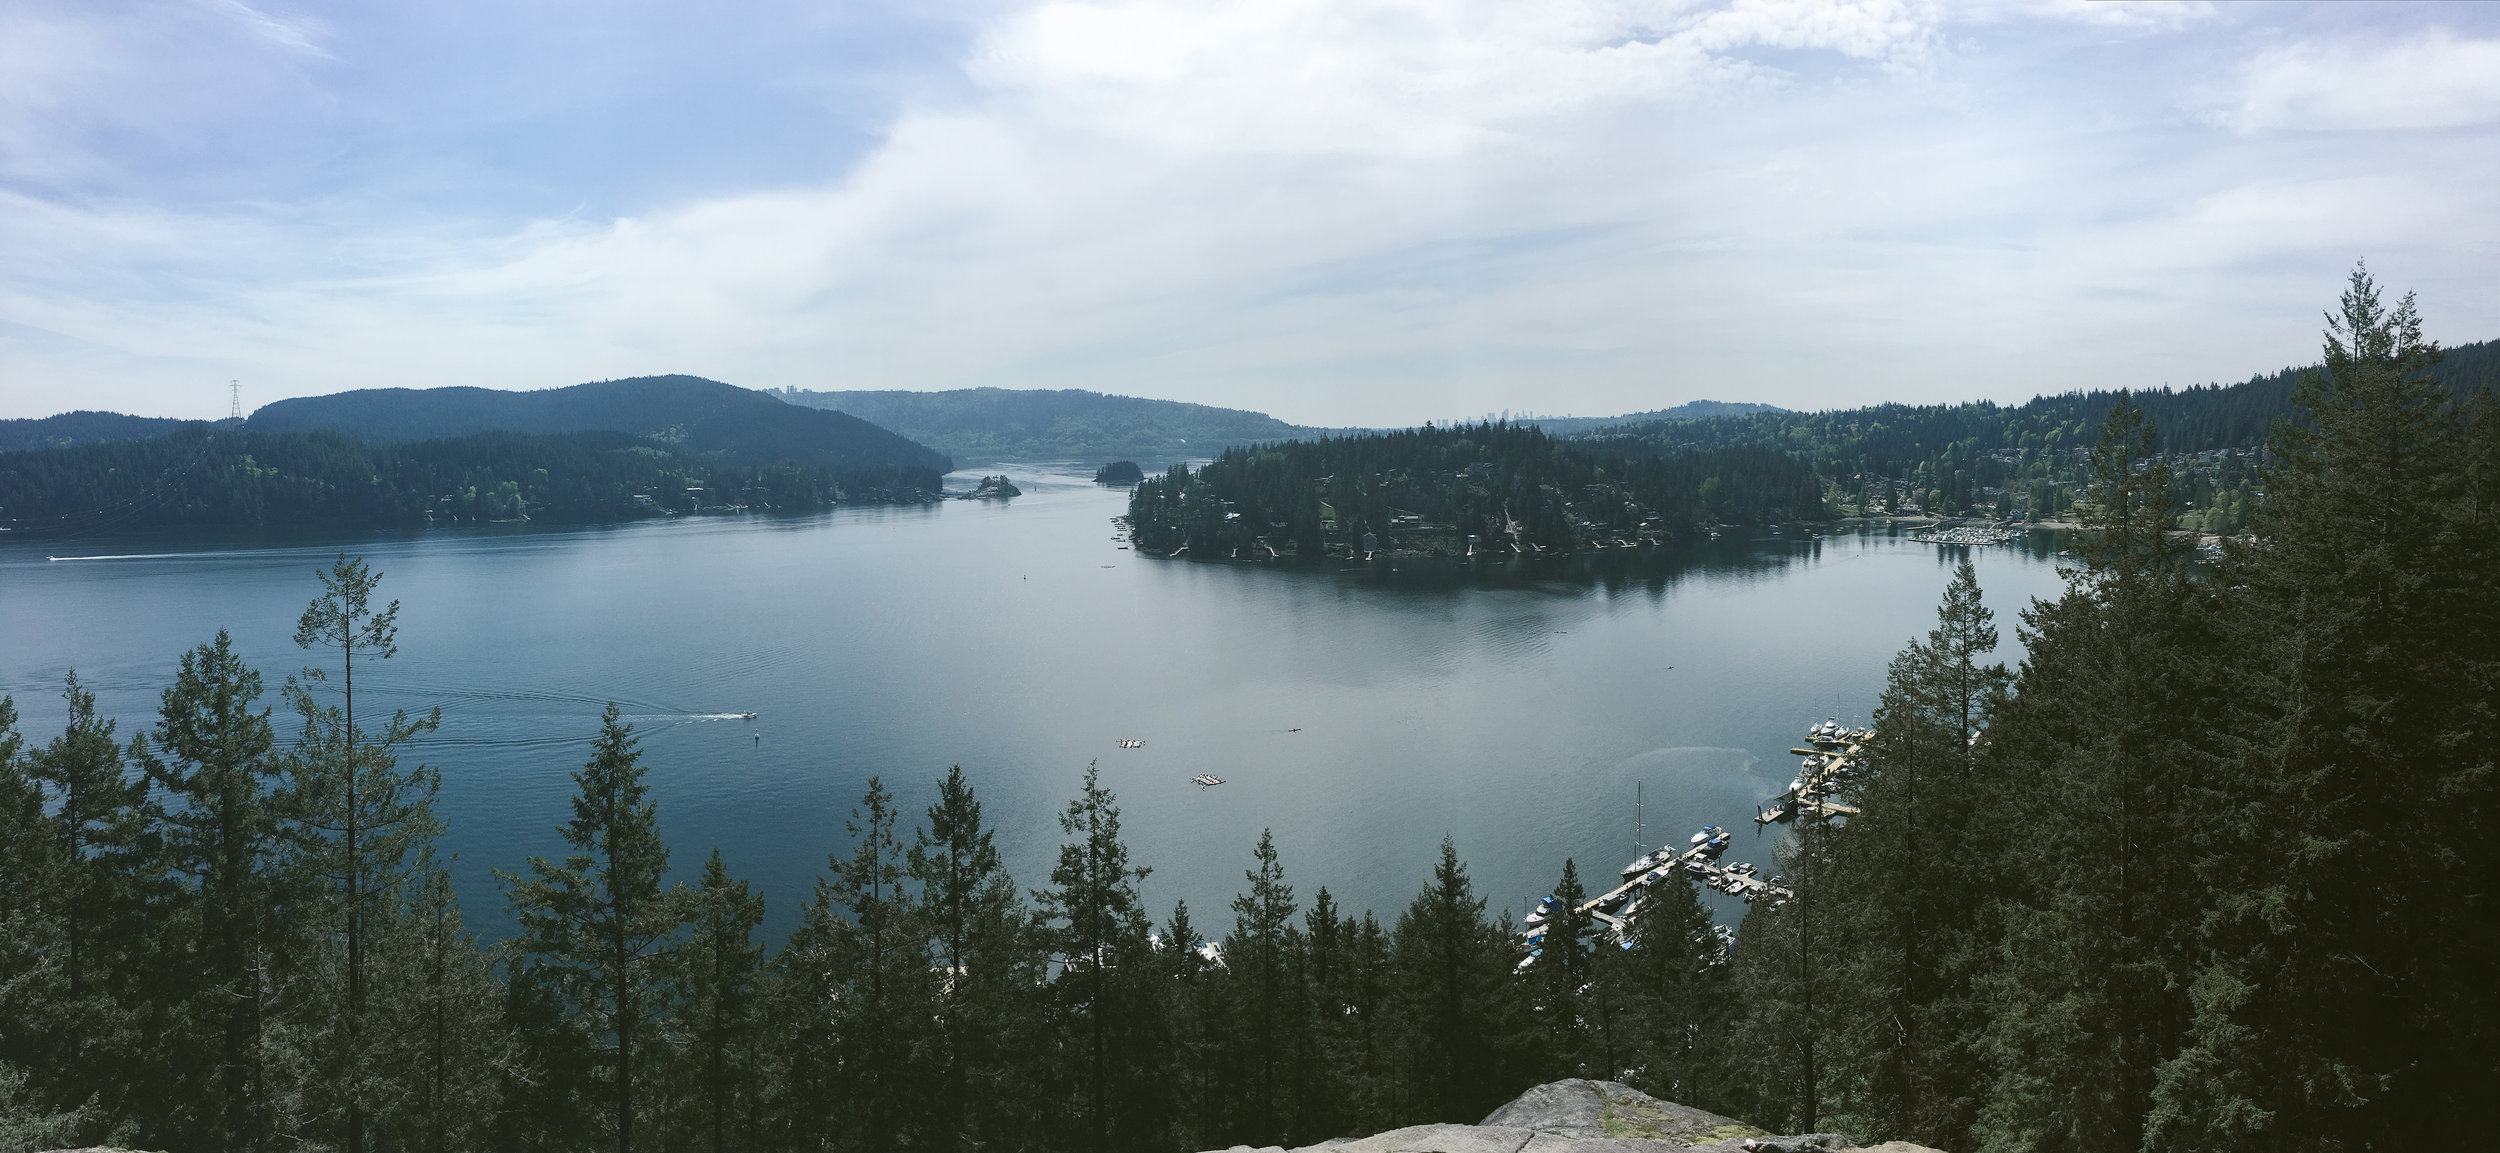 The view from Quarry Rock in Deep Cove.